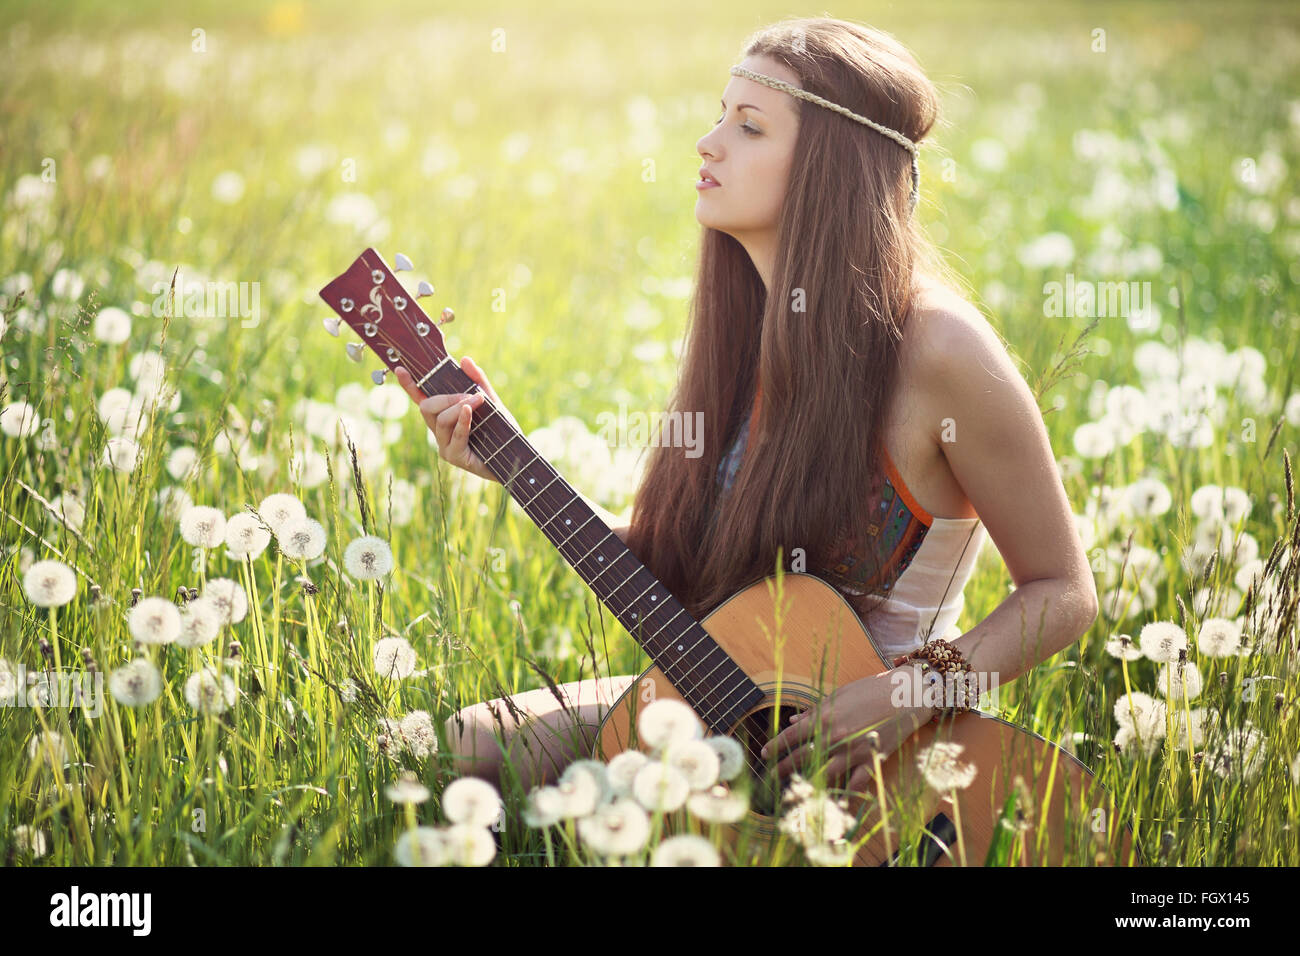 Femme Hippie avec guitare en été meadow . L'harmonie de la Nature Photo Stock